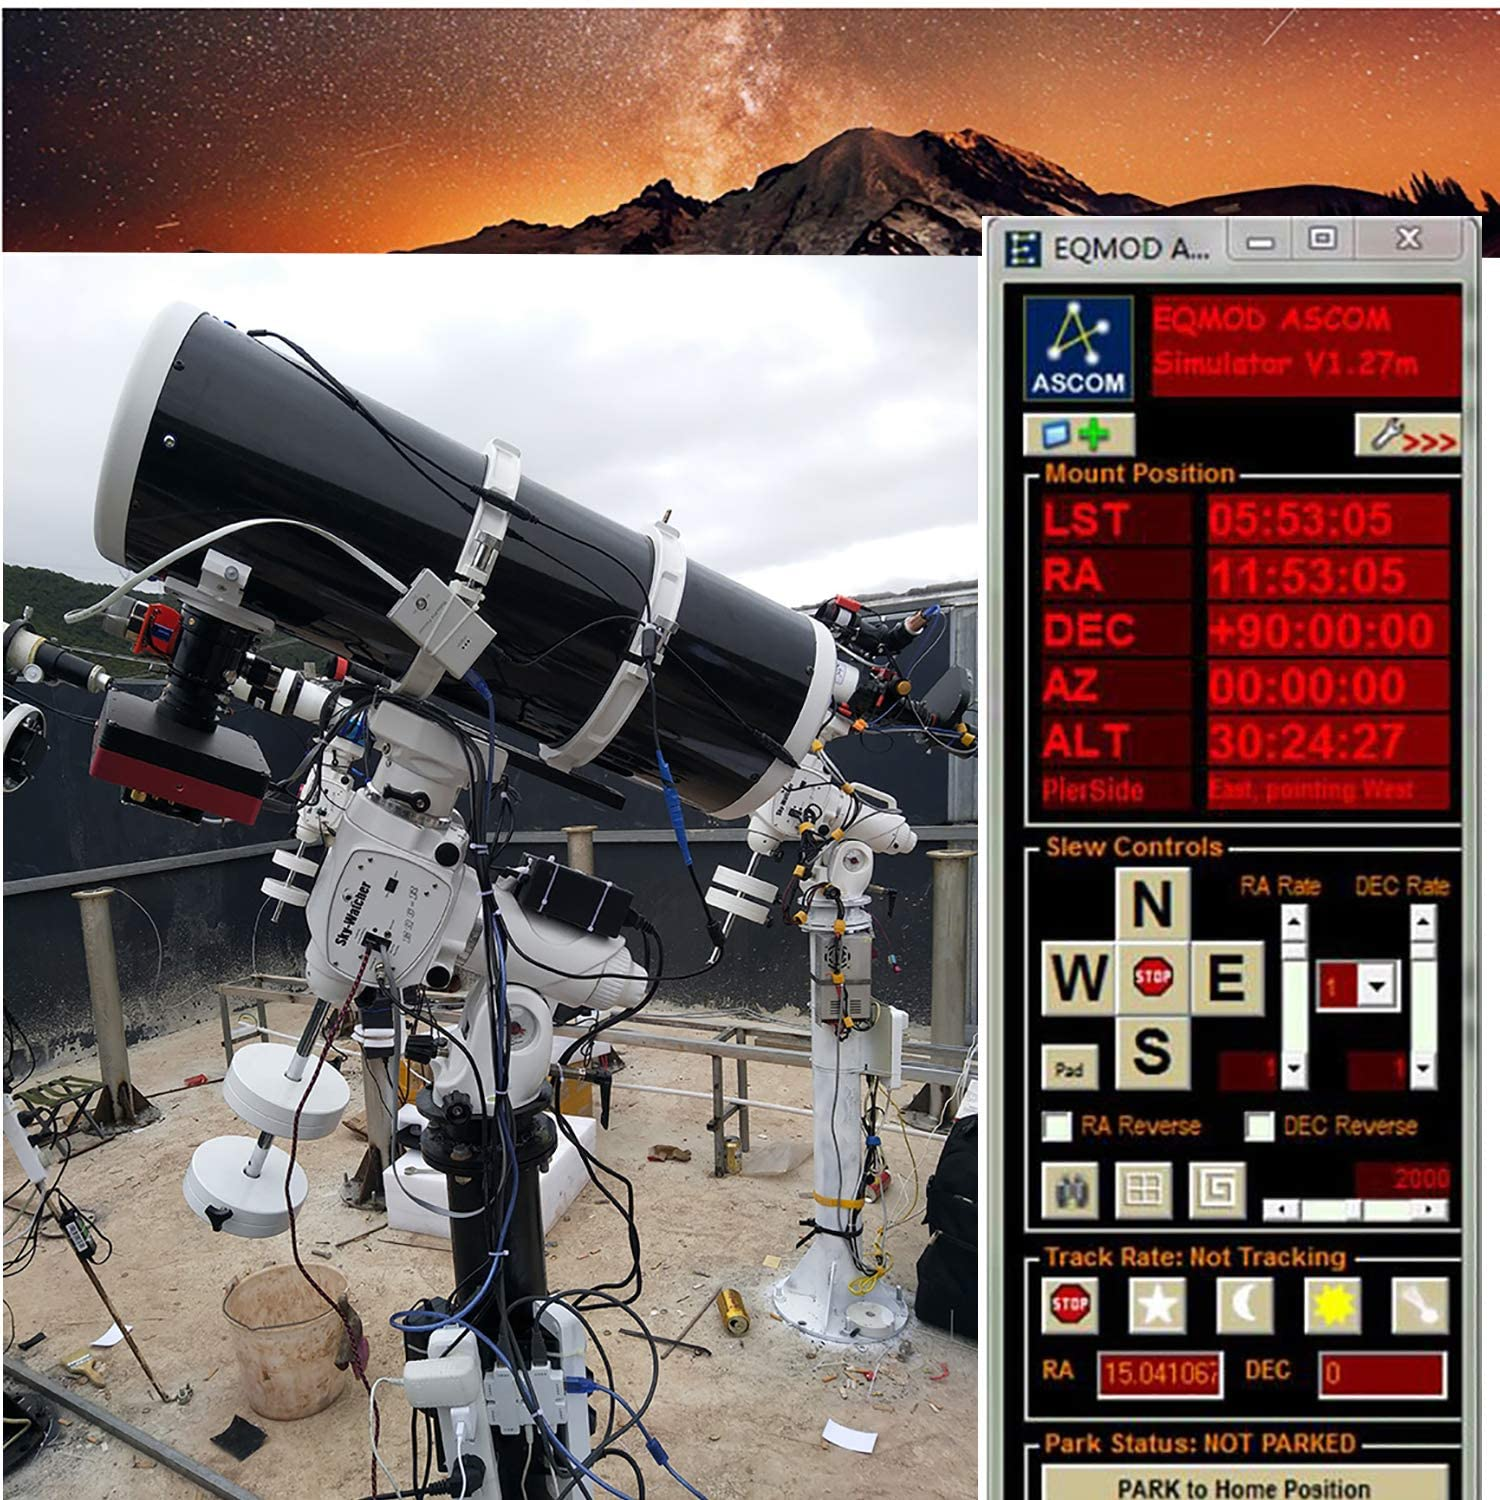 EQMOD ASCOM Skywatcher Telescopes Cable for Skywatcher HEQ5pro AZEQ5 AZEQ6 EQ6-R Support EQMOD ASCOM Set Up Sofware Manual Download Support Windows 10 Android 16ft//500cm, USB to DB9